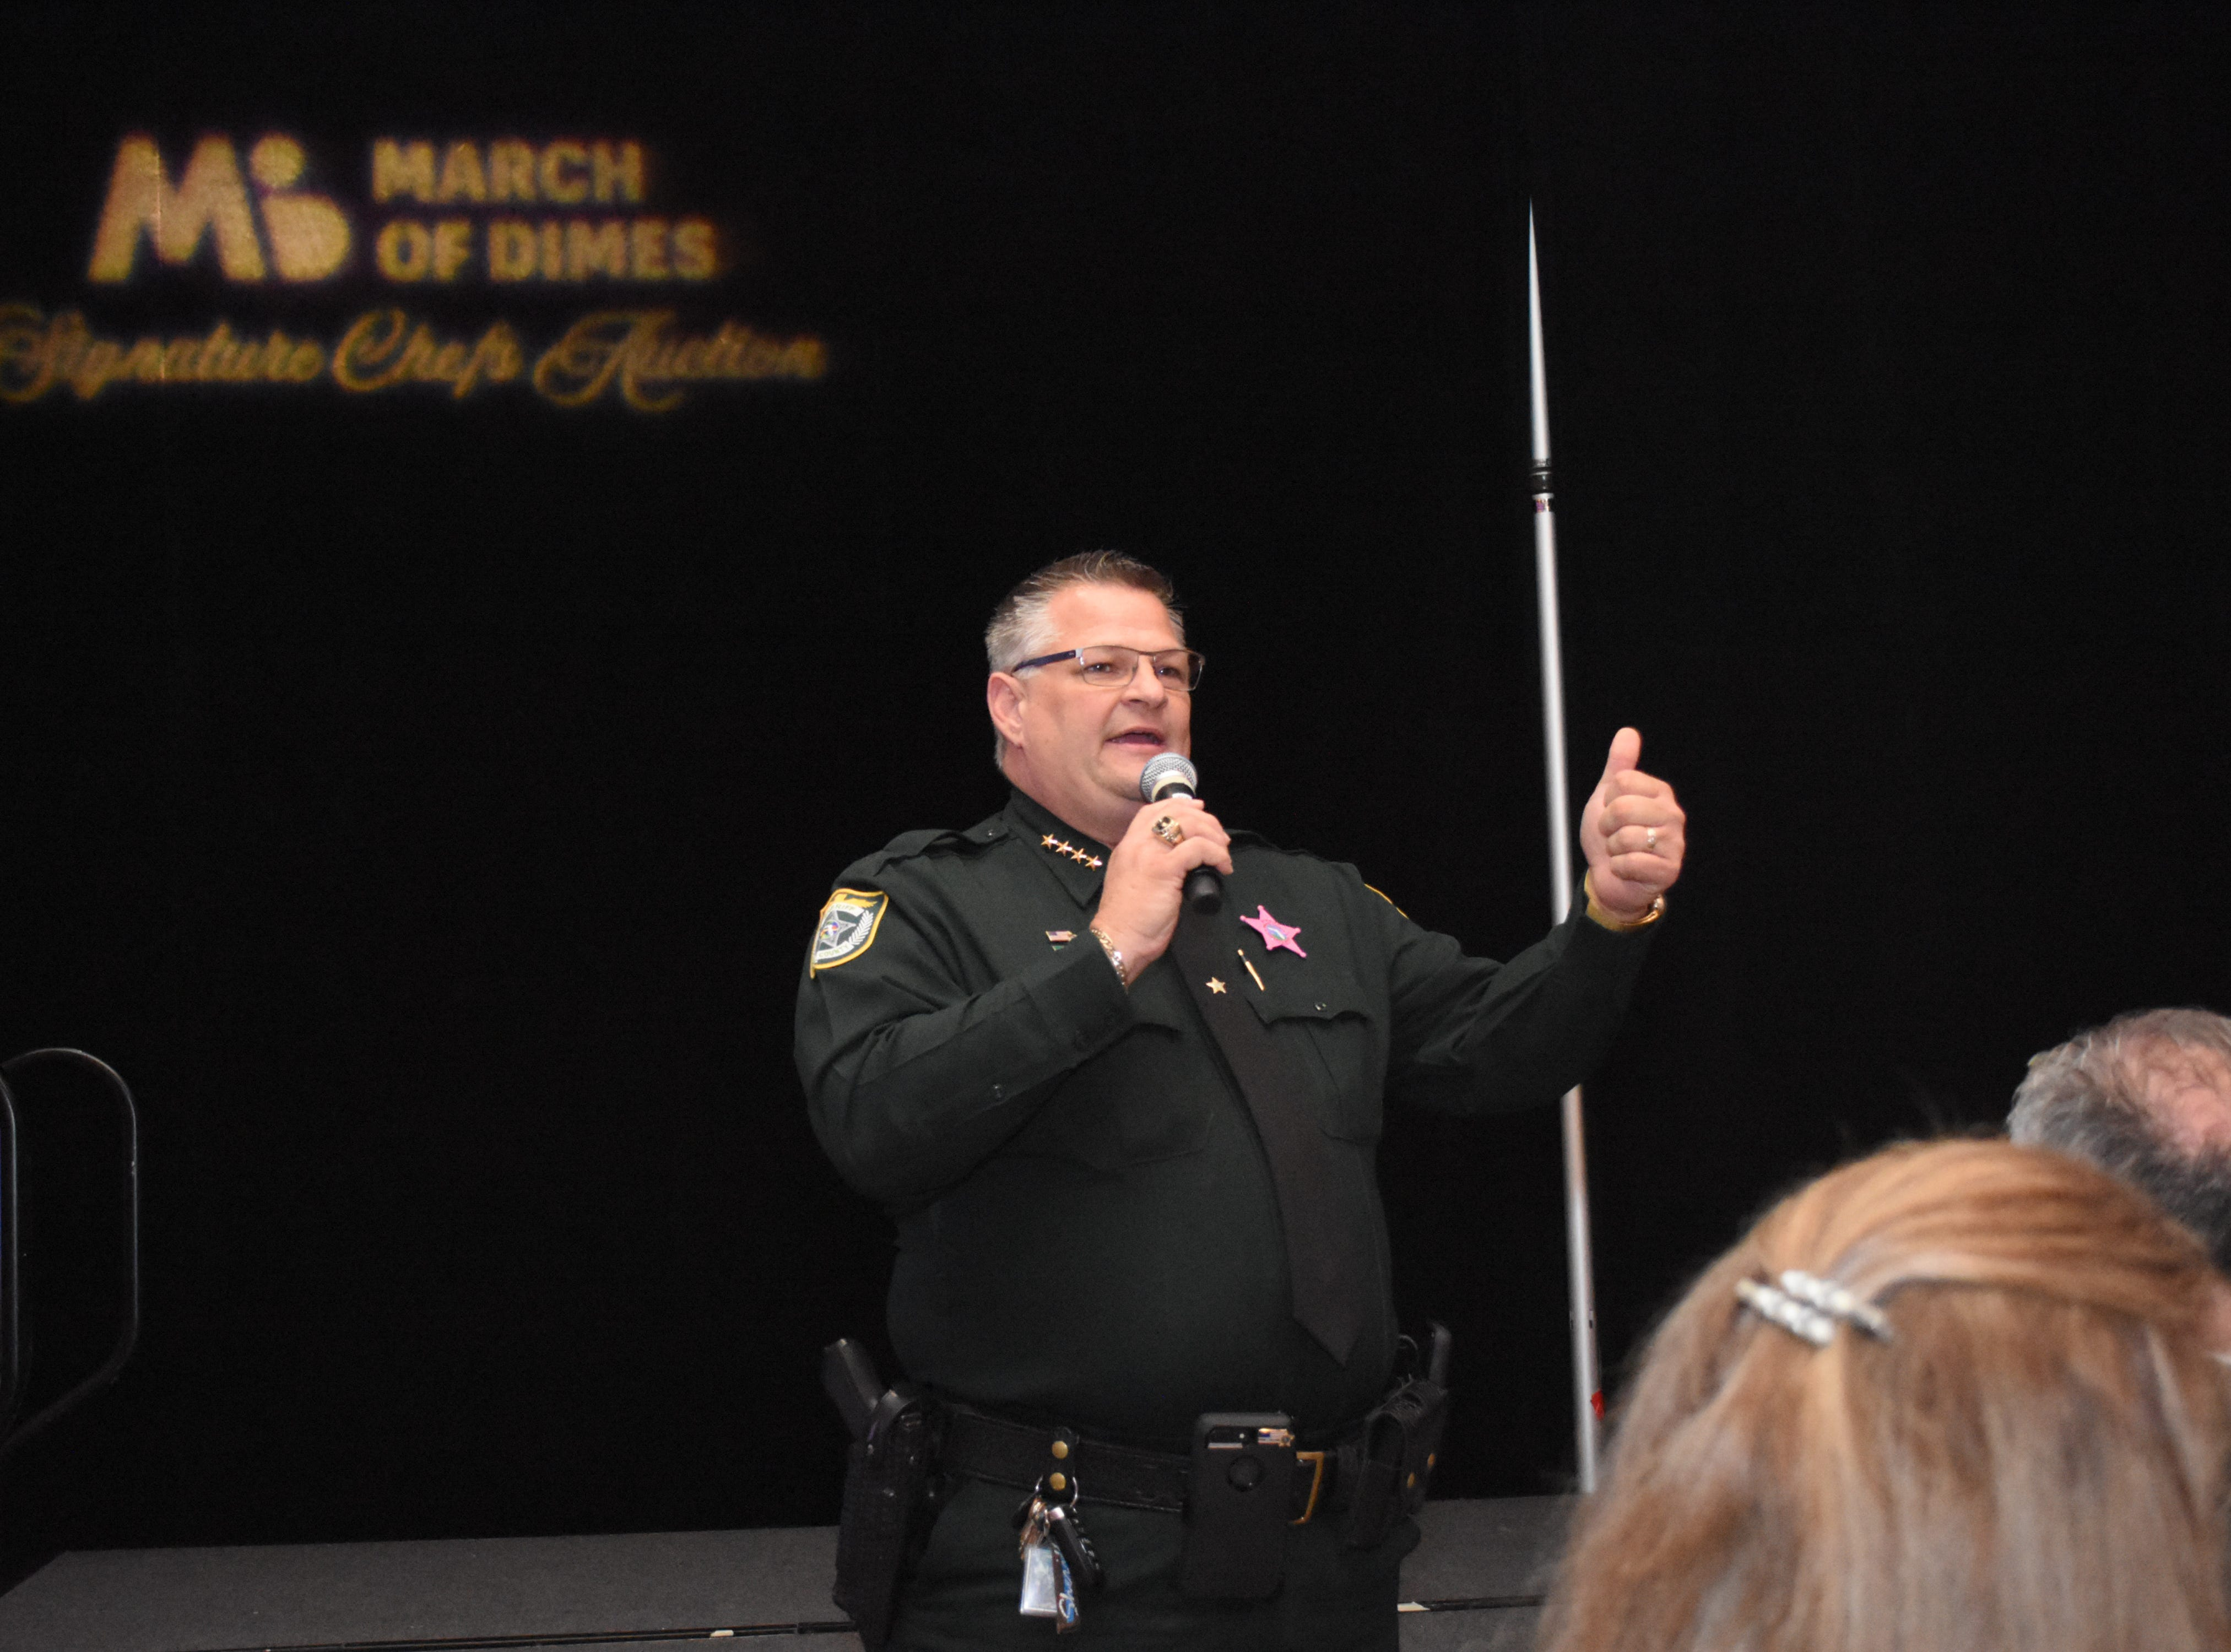 Sheriff Wayne Ivey was 2018's auctioneer at the March of Dimes Signature Chefs Auction.